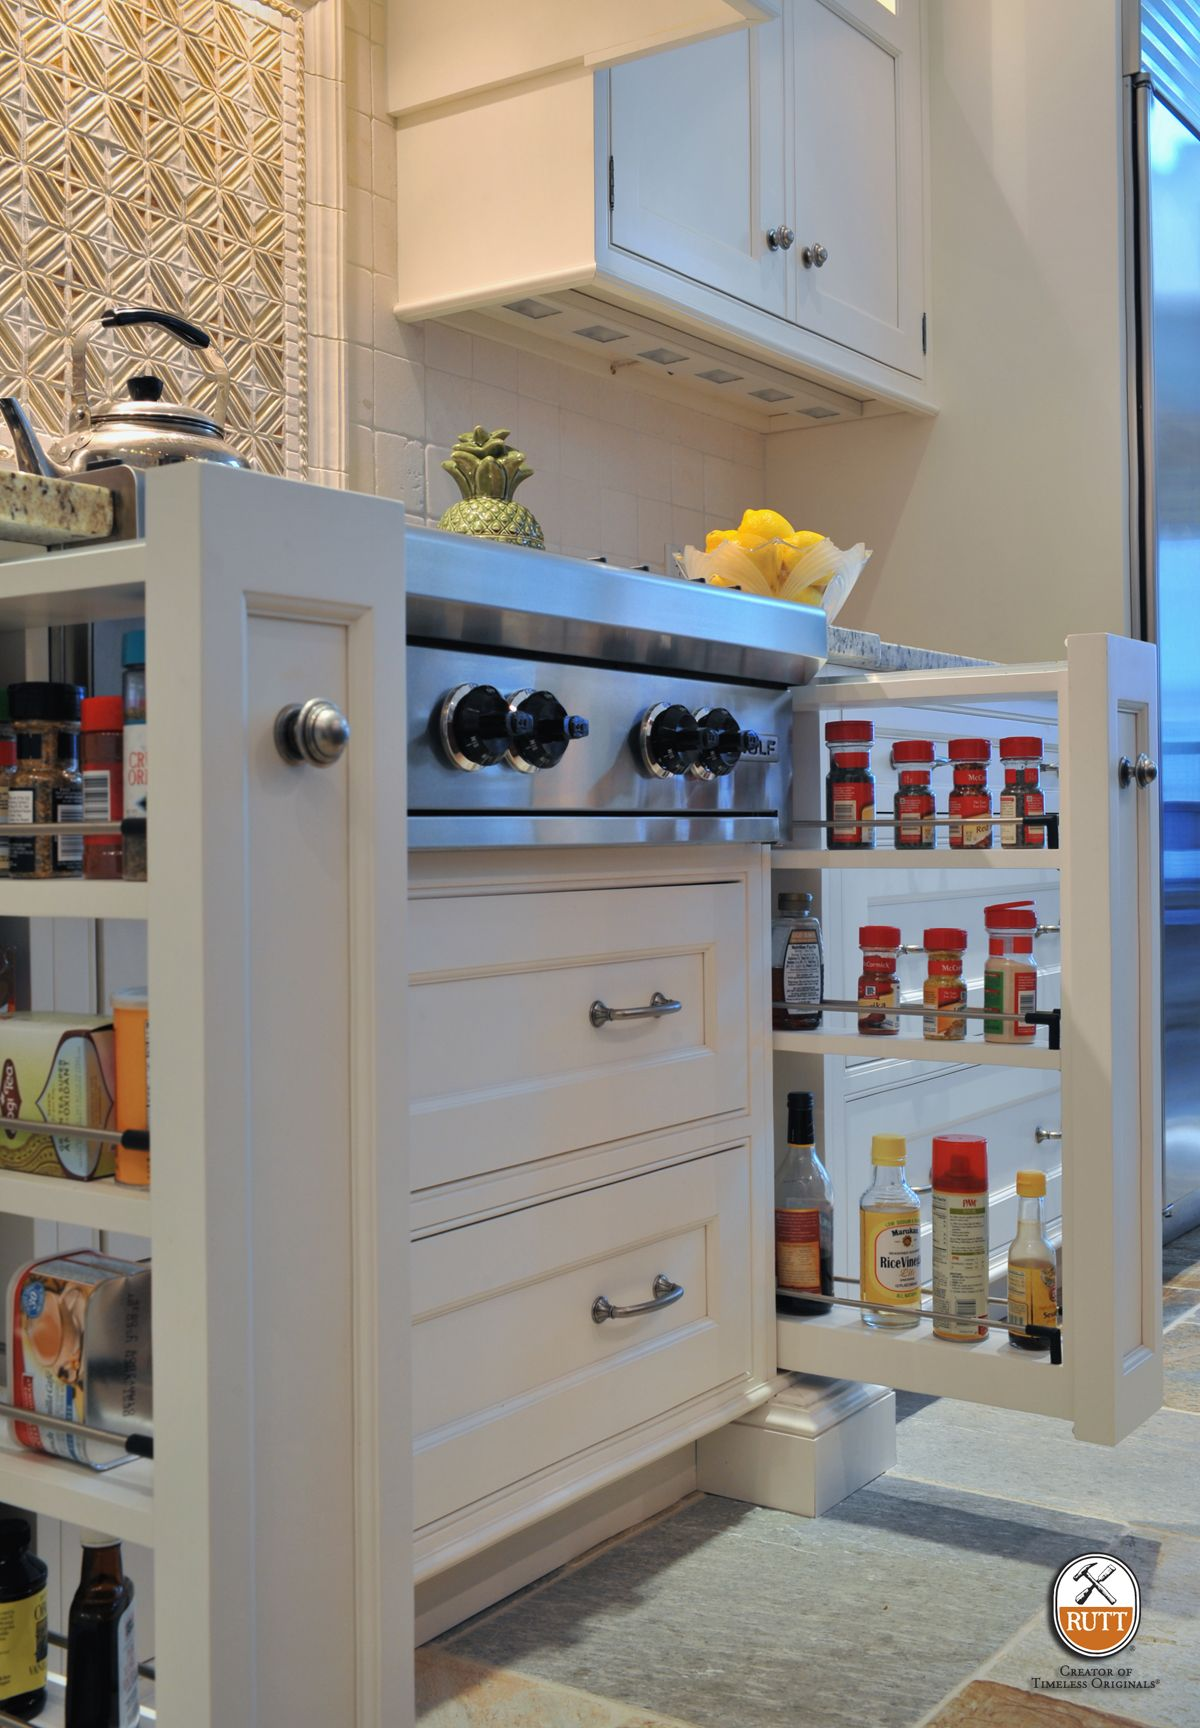 Base Pullout Columns Flanking The Cooktop Or Range Provide Storage For Oils And Es